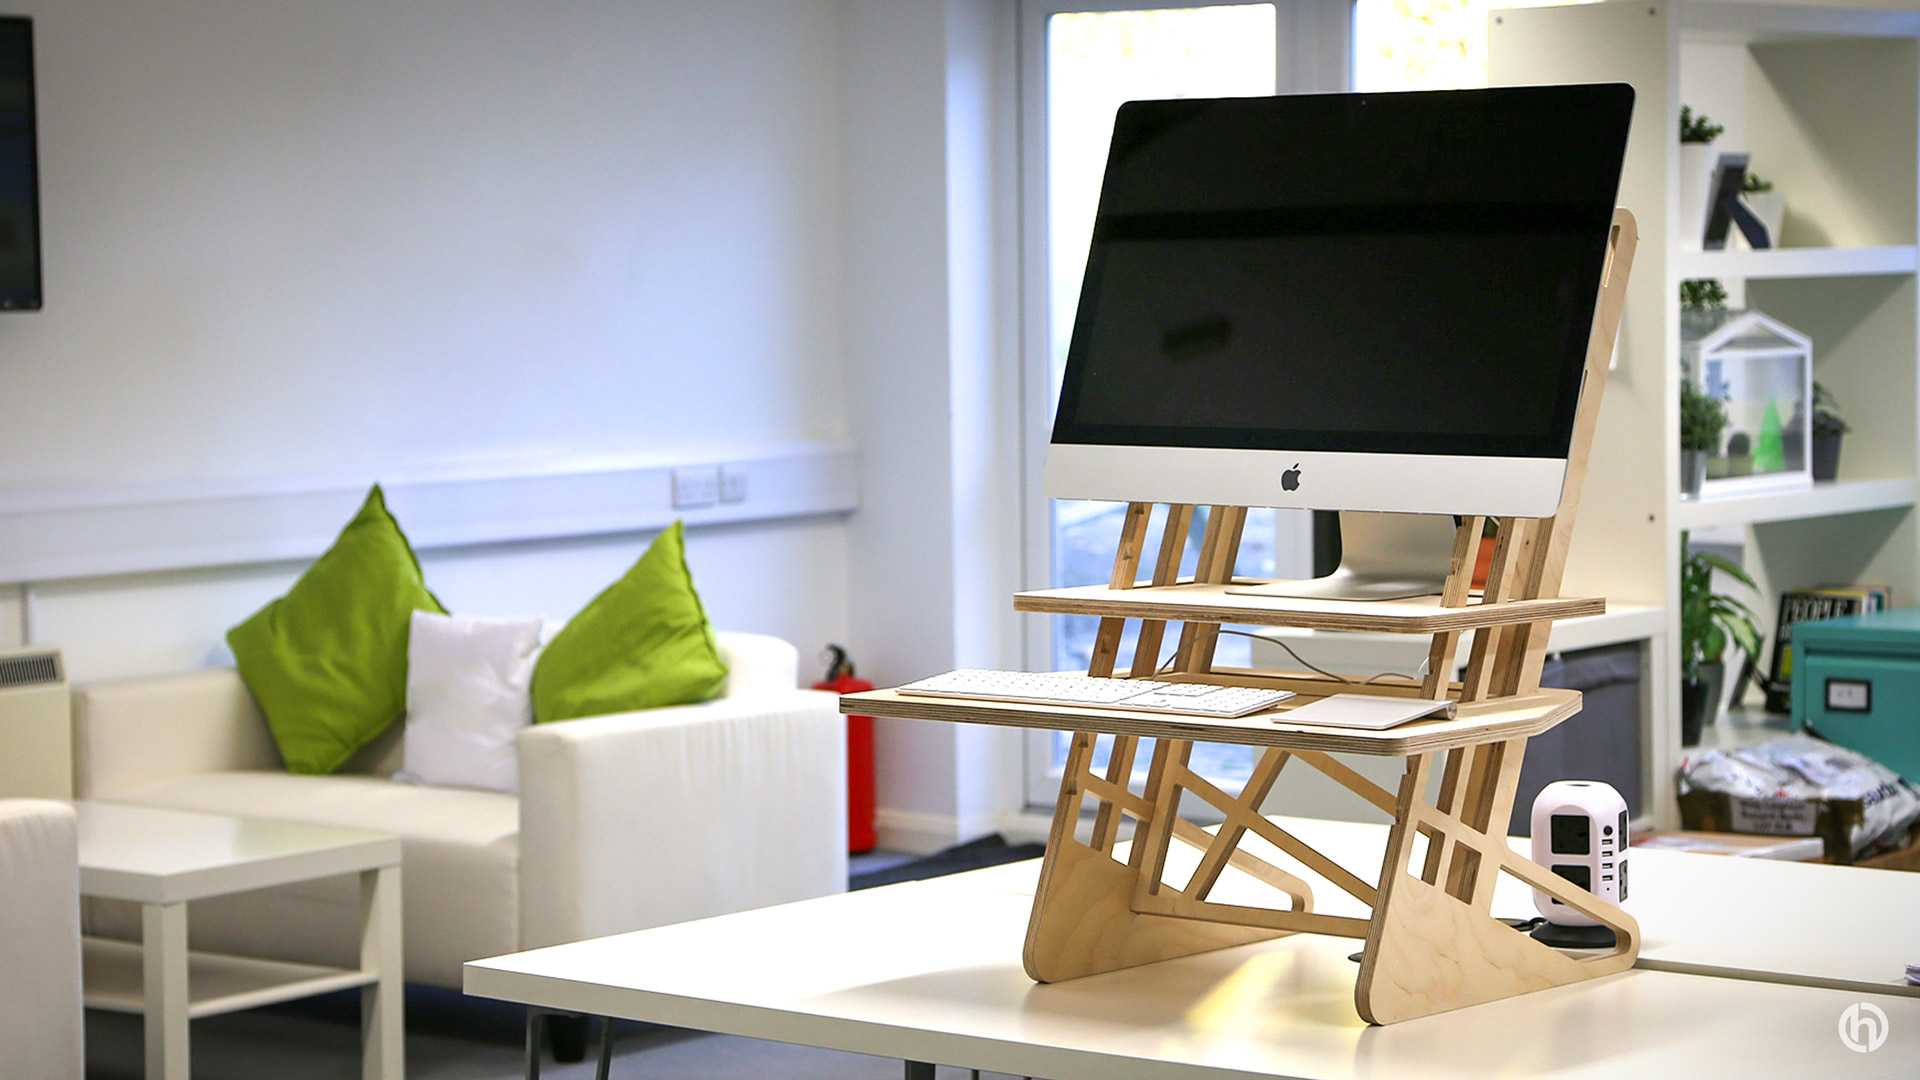 Helmm office furniture product design